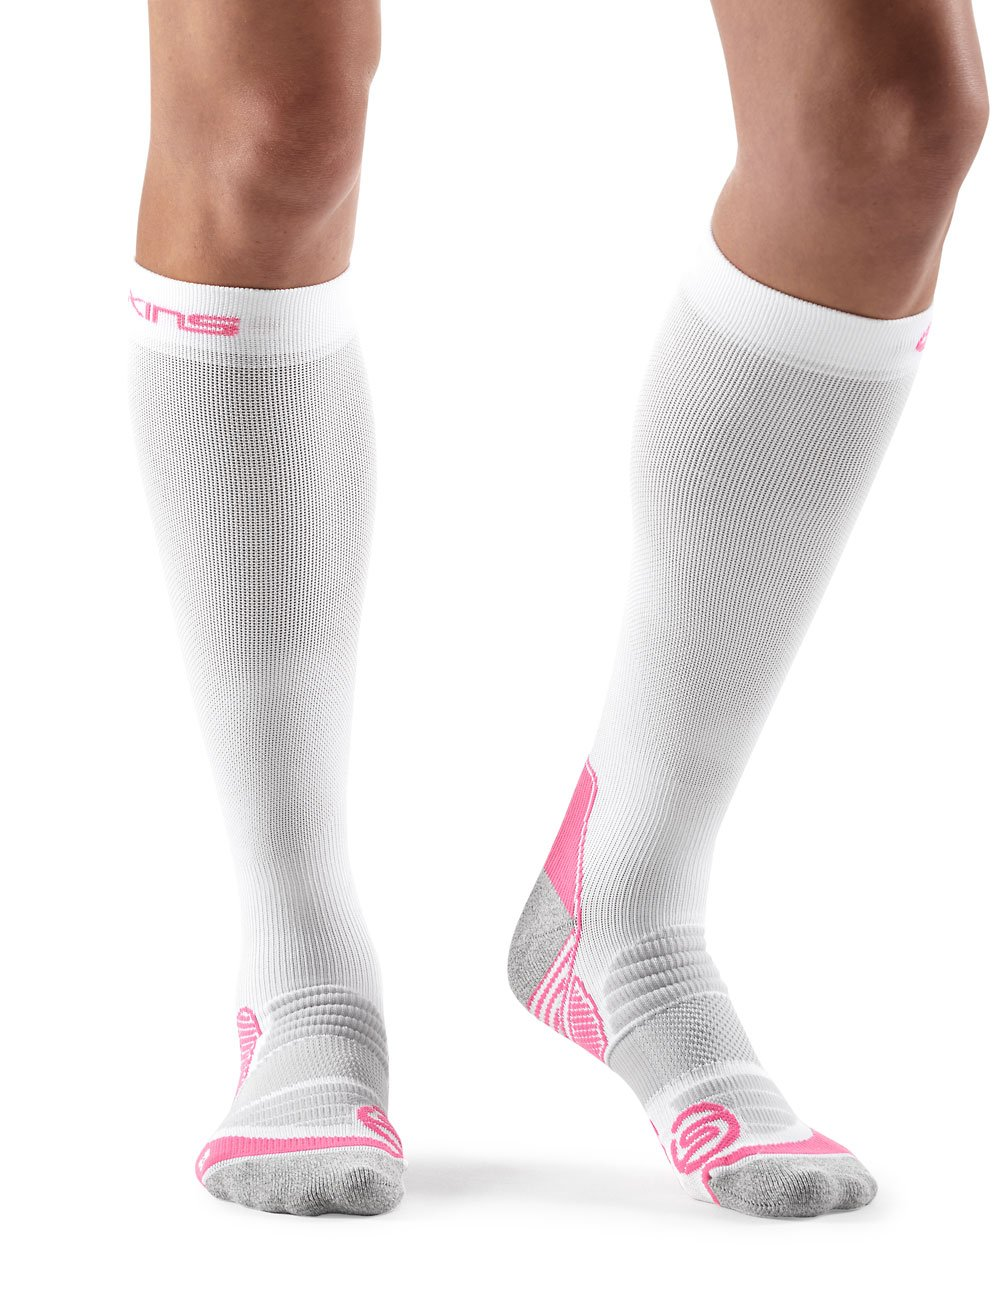 SKINS Essentials A400 Compression Socks SKIIM A400SOCK-P